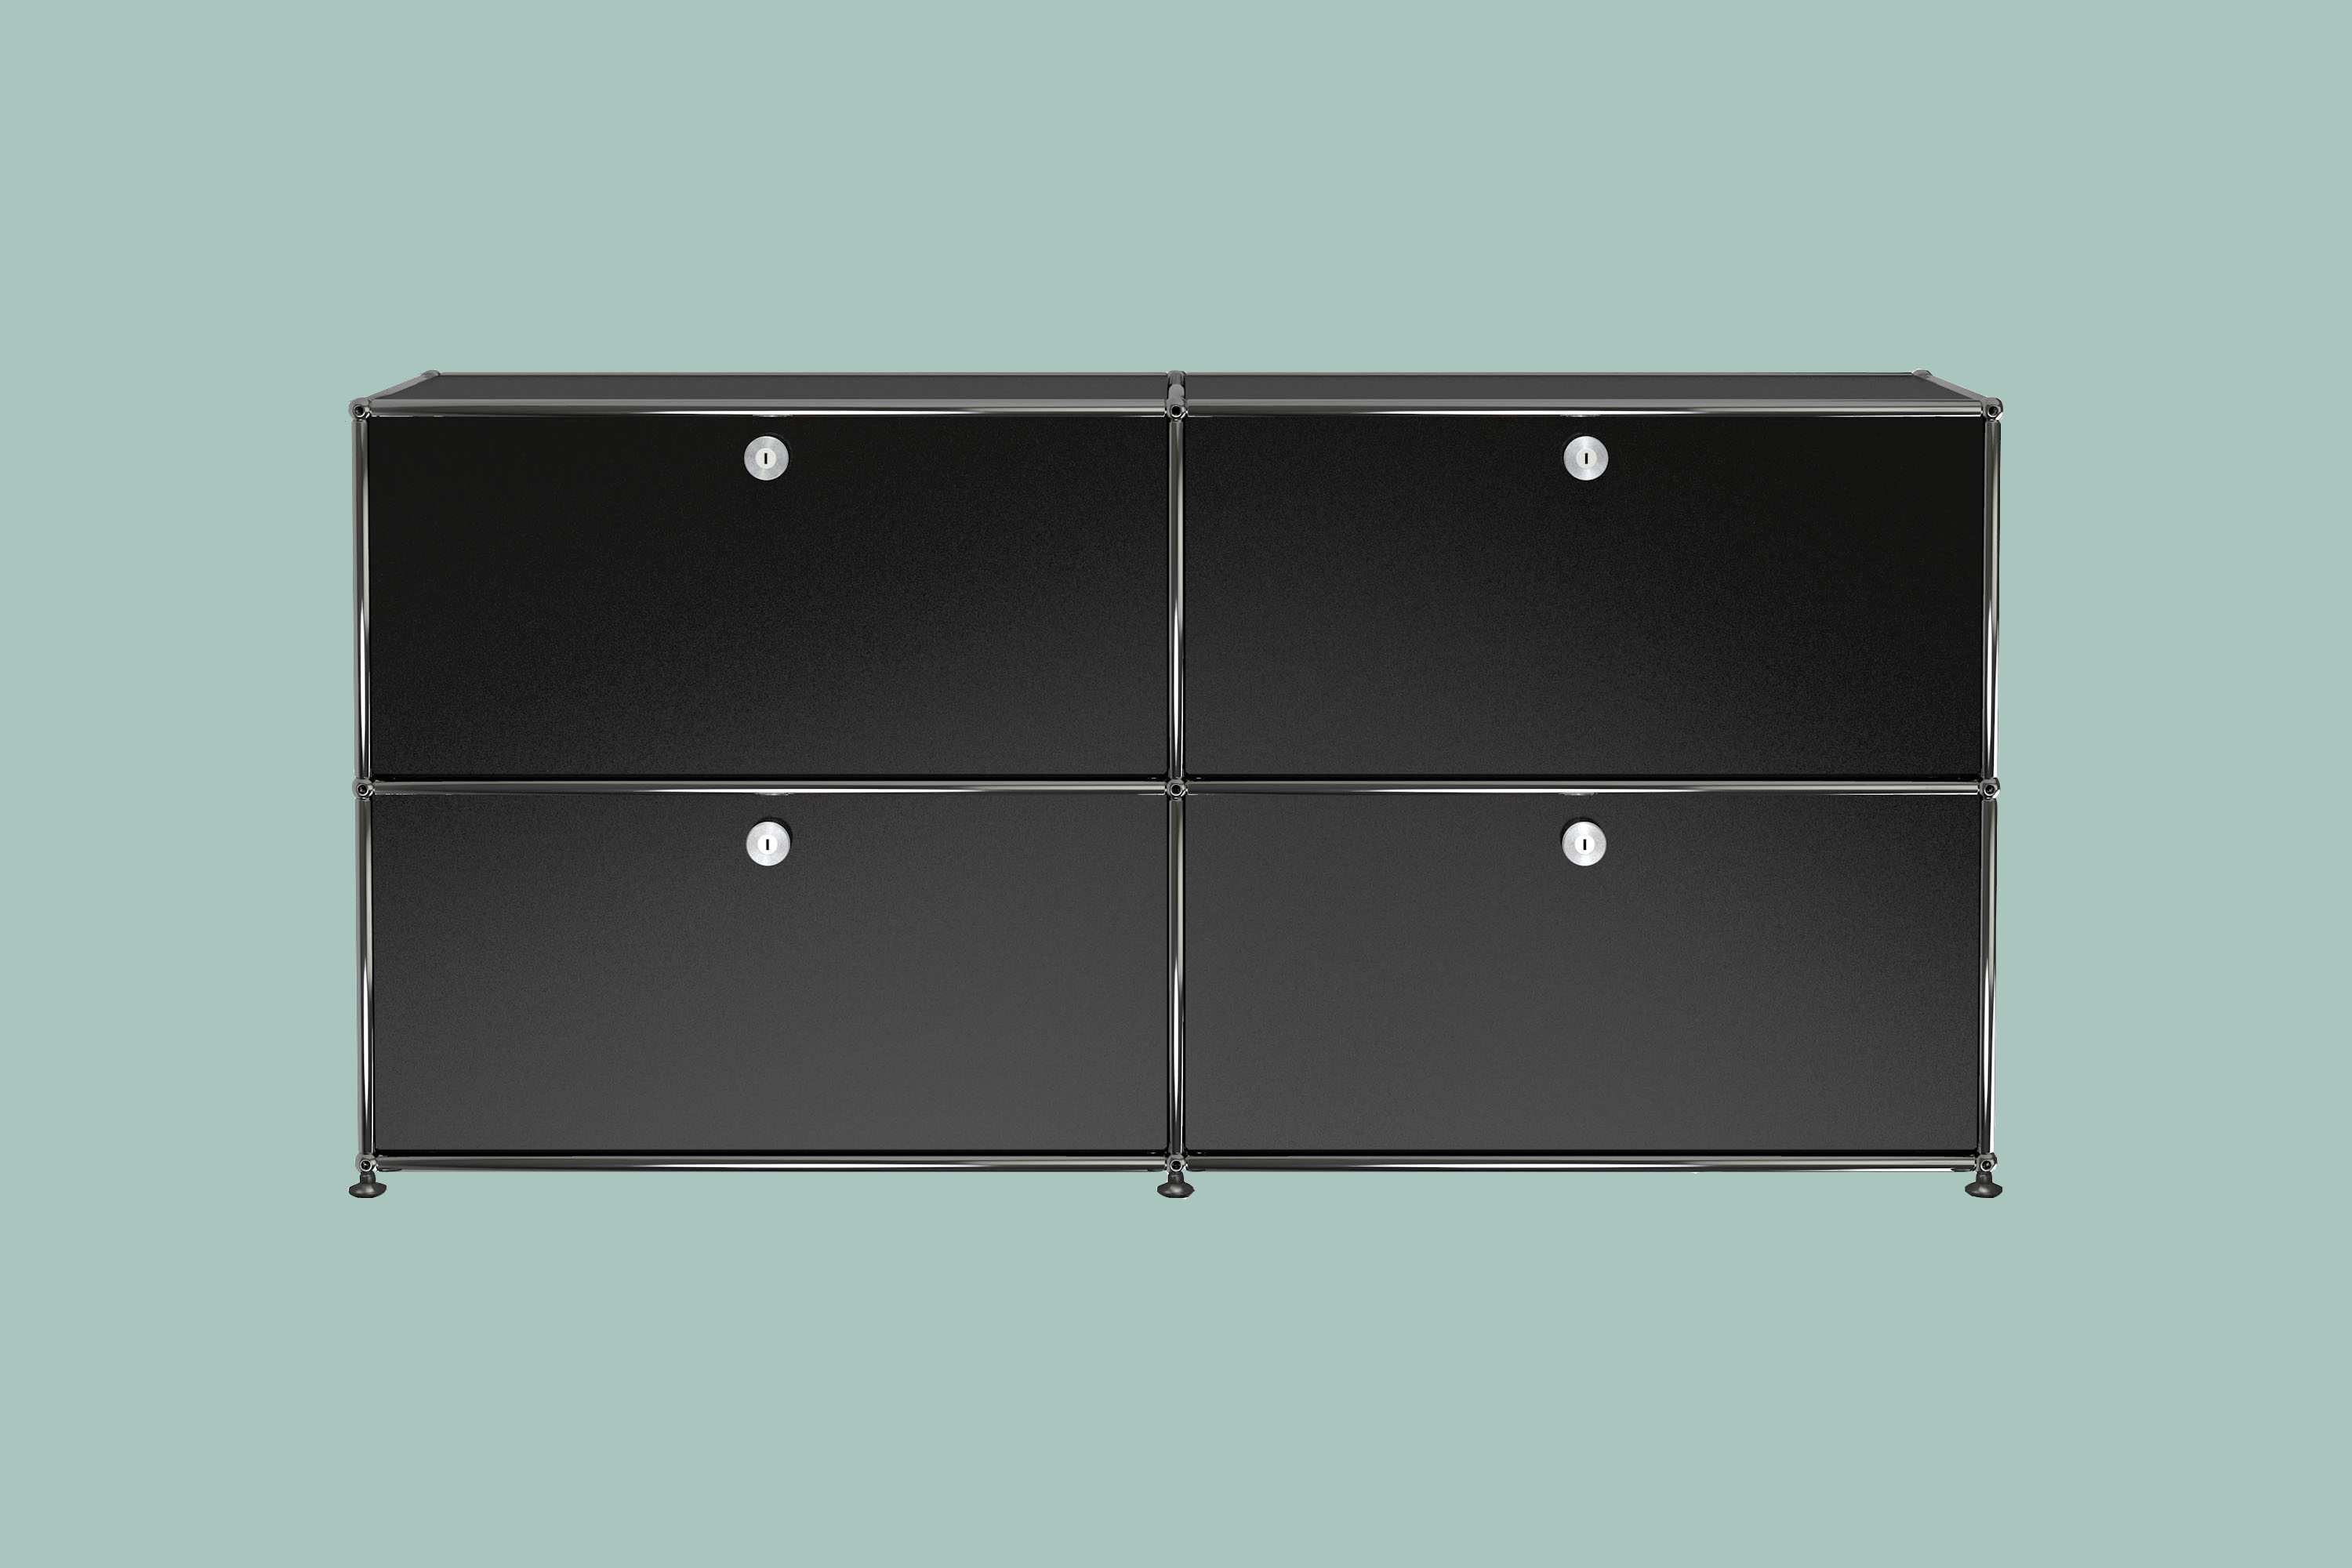 Black dresser with two rows of two compartments with silver edging and finishes.